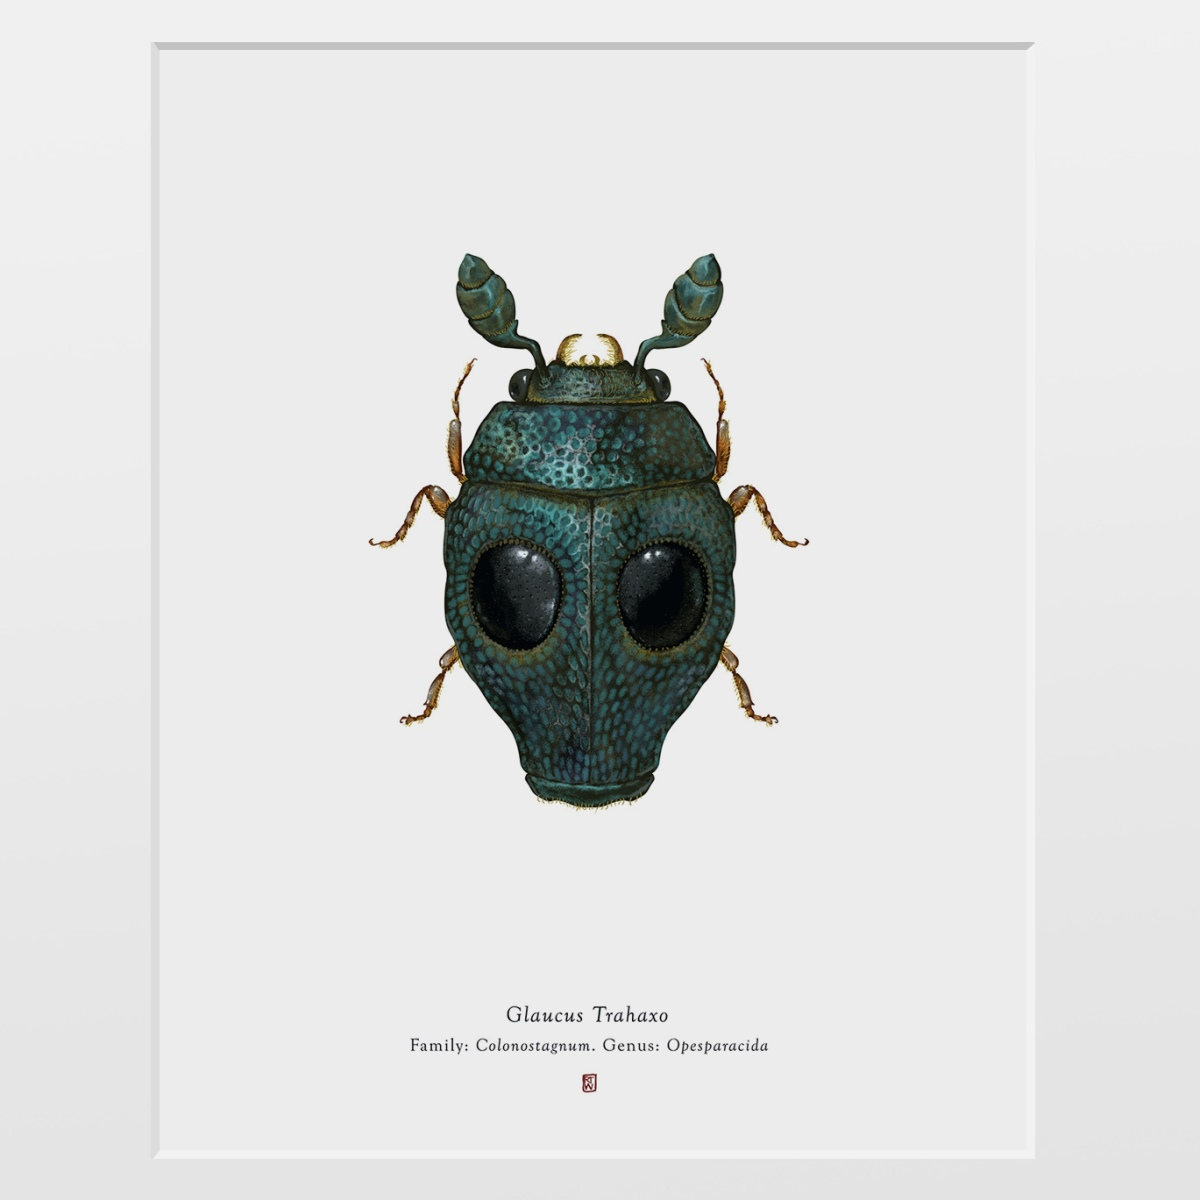 Richard Wilkinson's New Print Series Looks At Insects From A Galaxy Far, Far Away